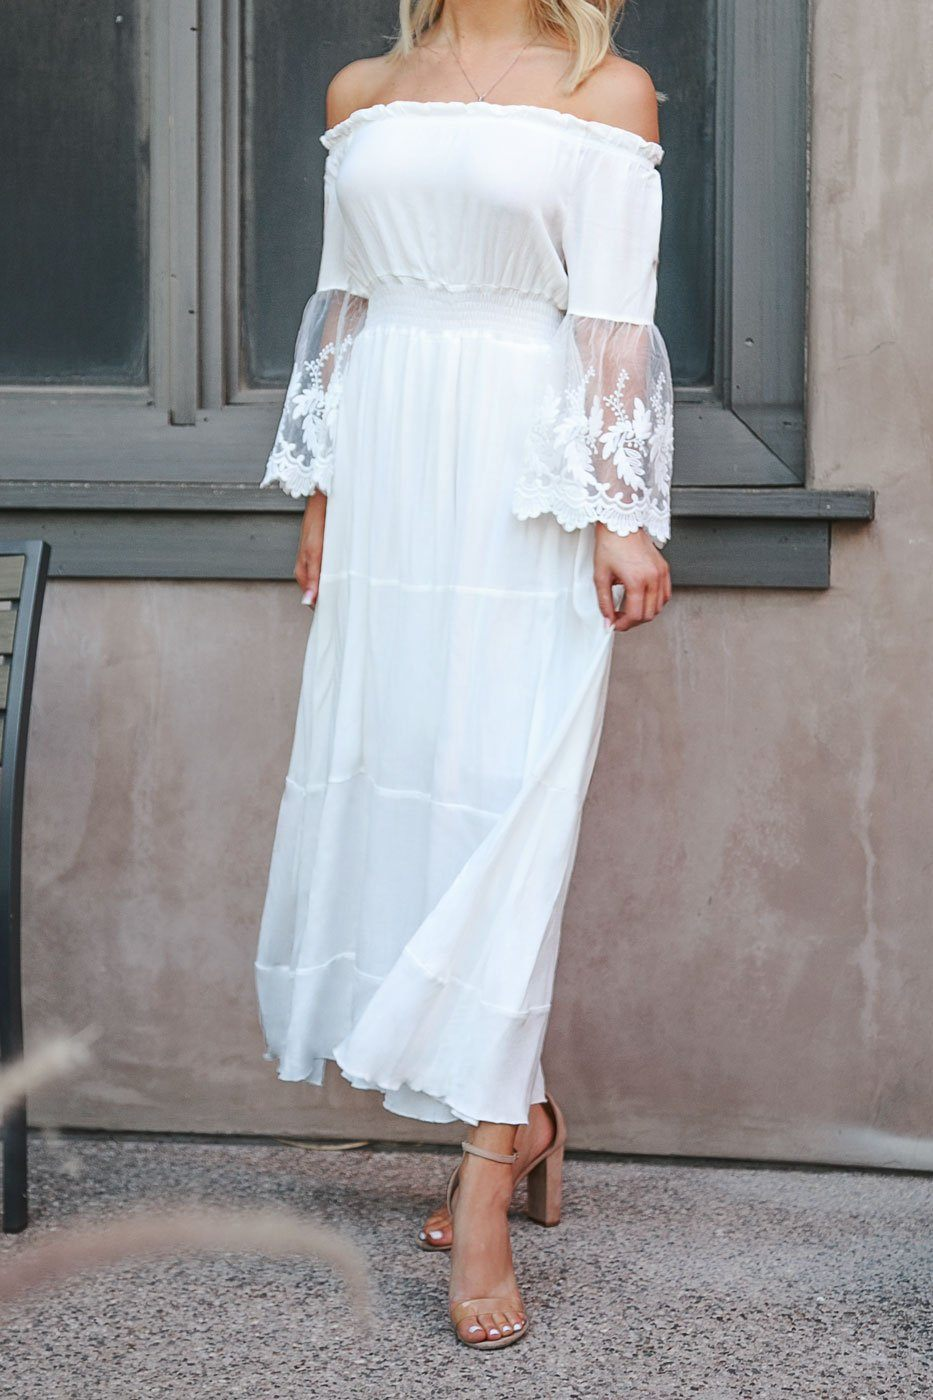 White Off The Shoulder Maxi Dress with Lace Sleeves